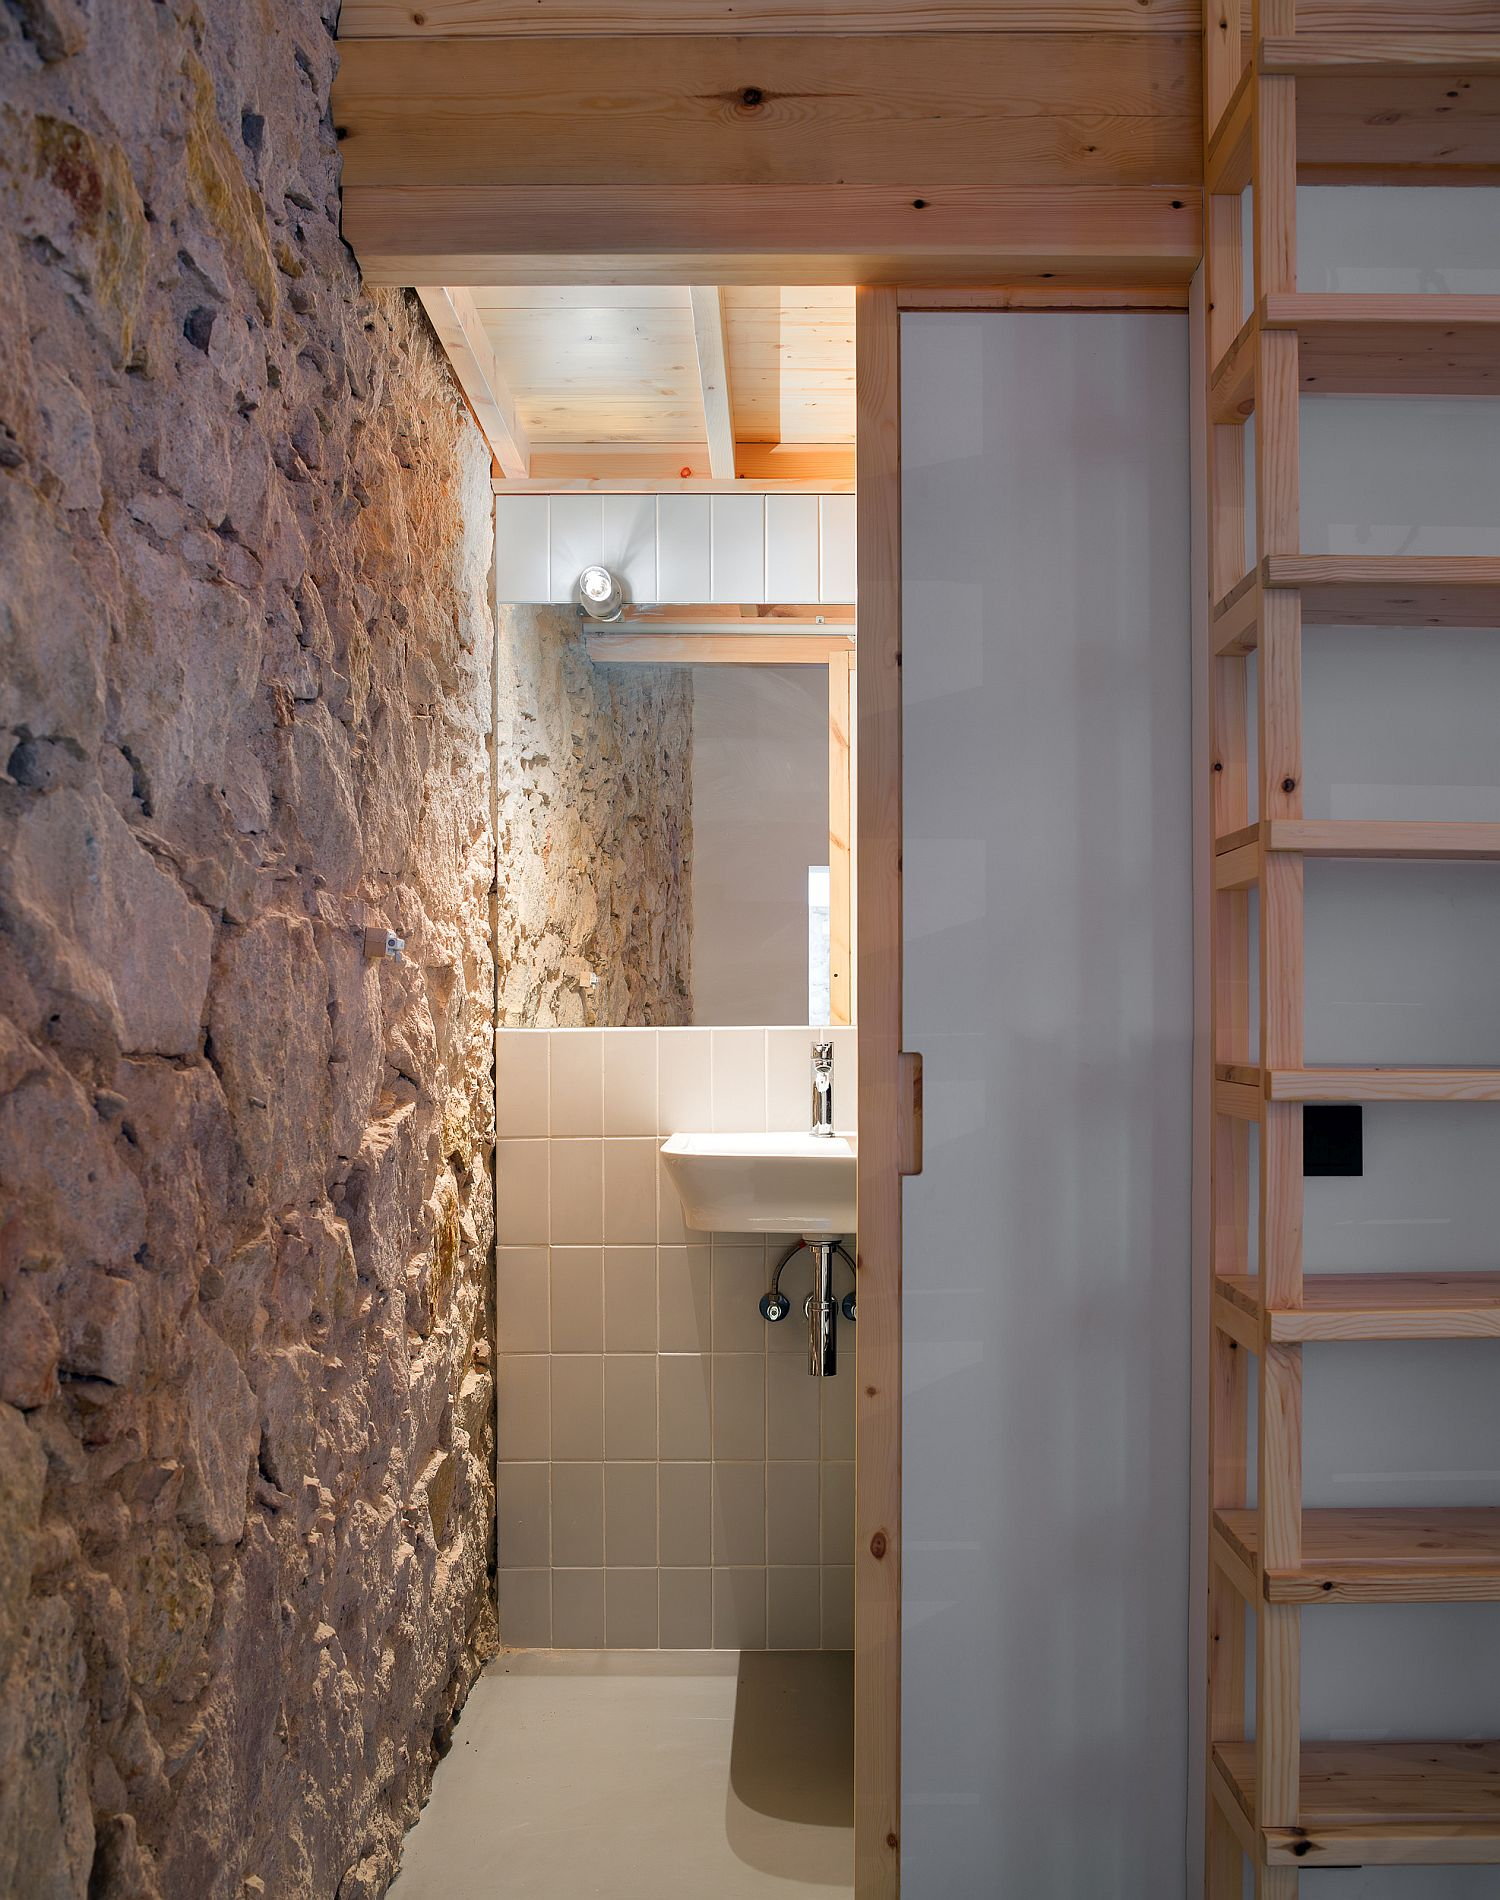 Original stone and plaster walls of the apartment are preserved carefully